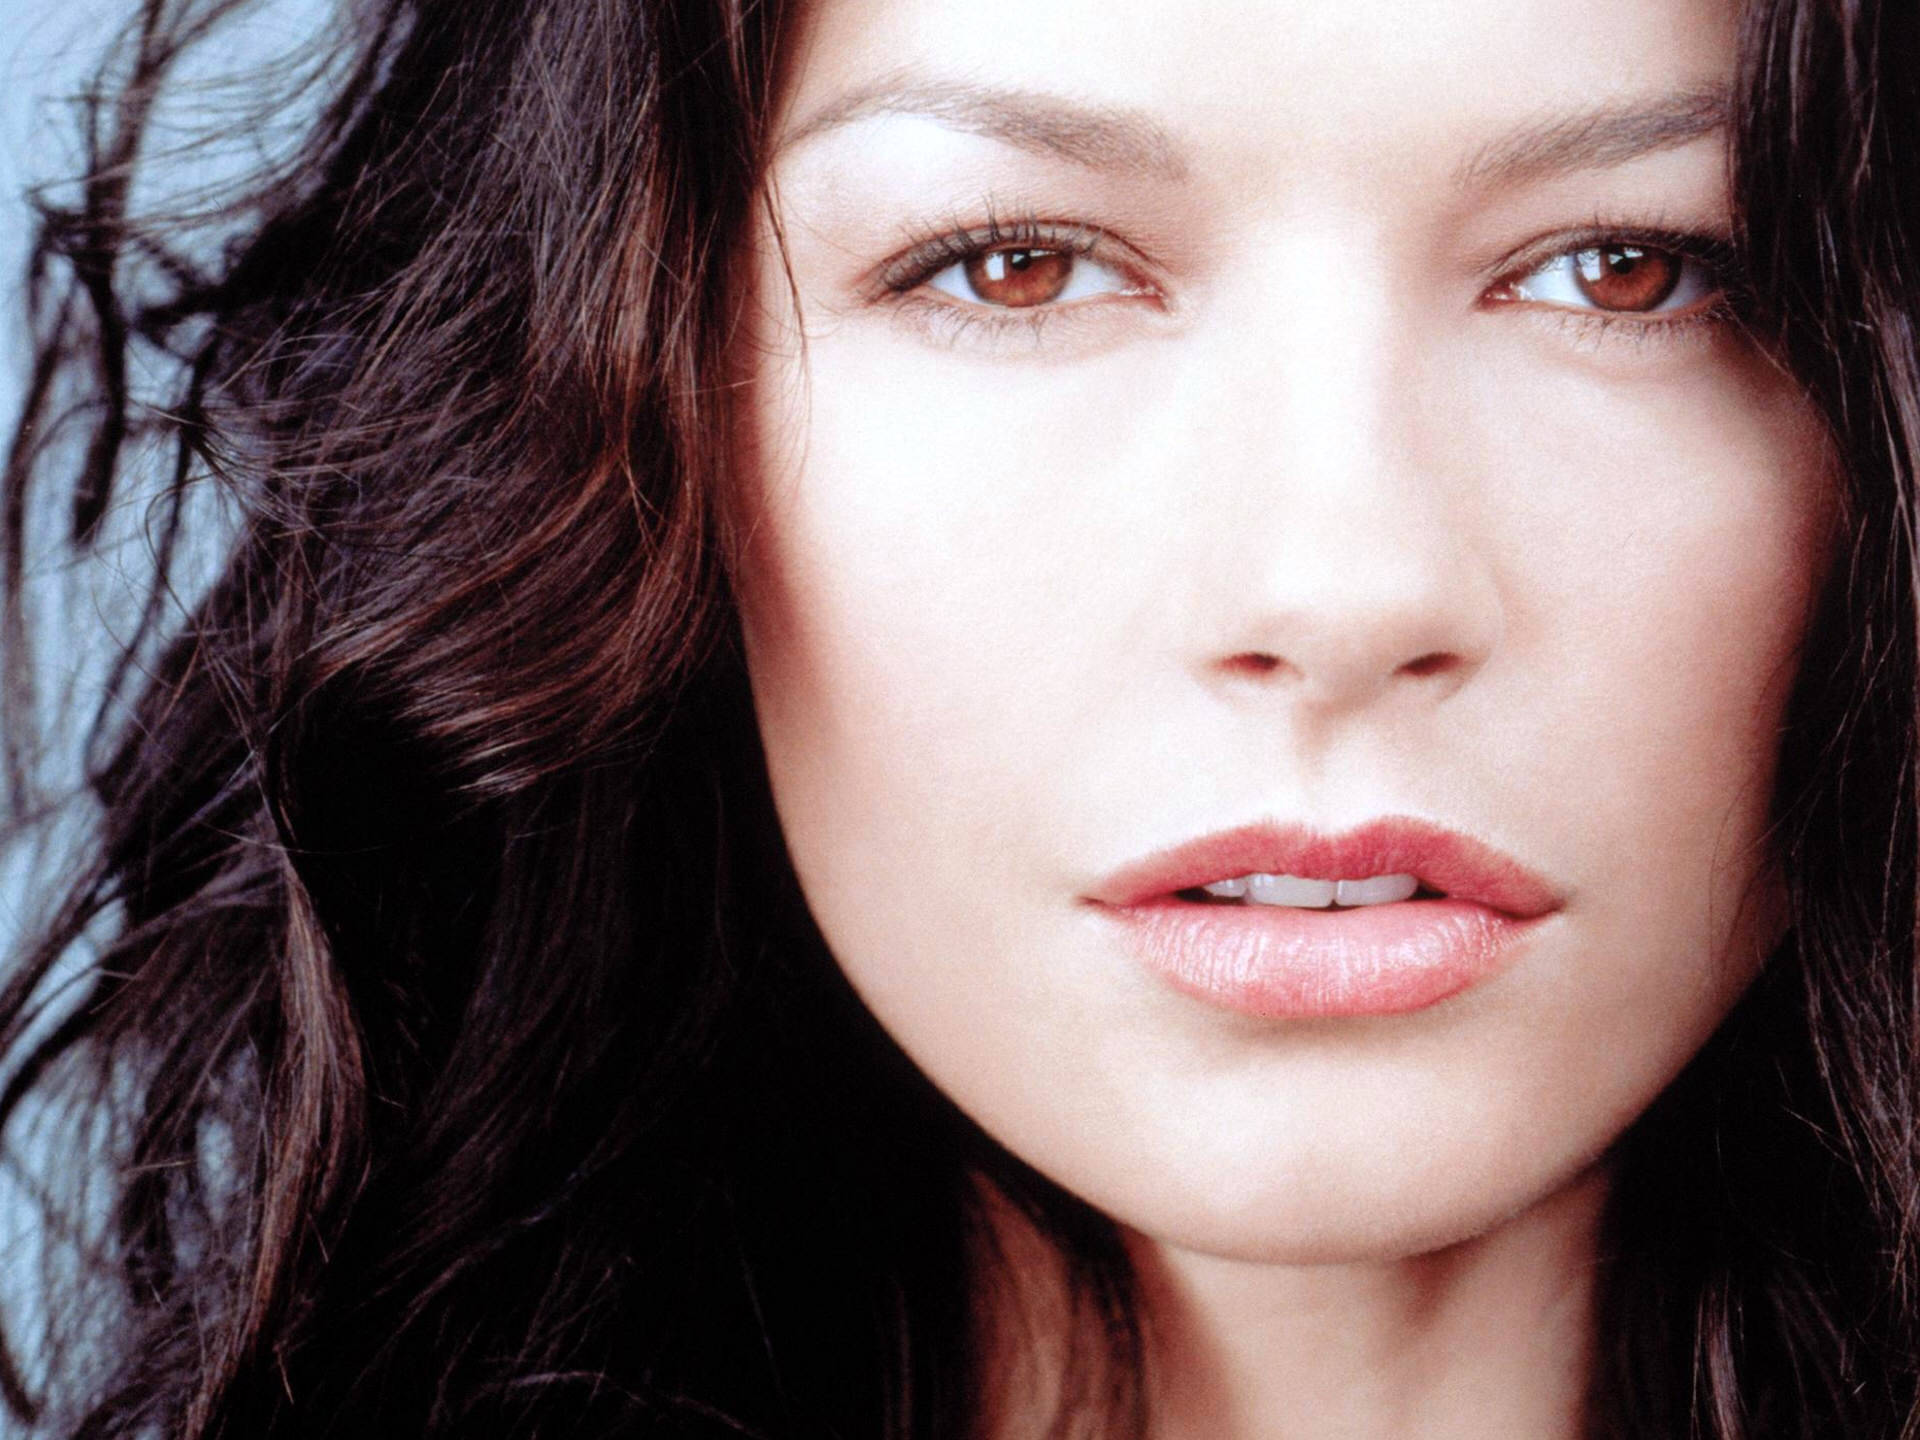 Makeup Star Libra Females Catherine Zeta-Jones-10